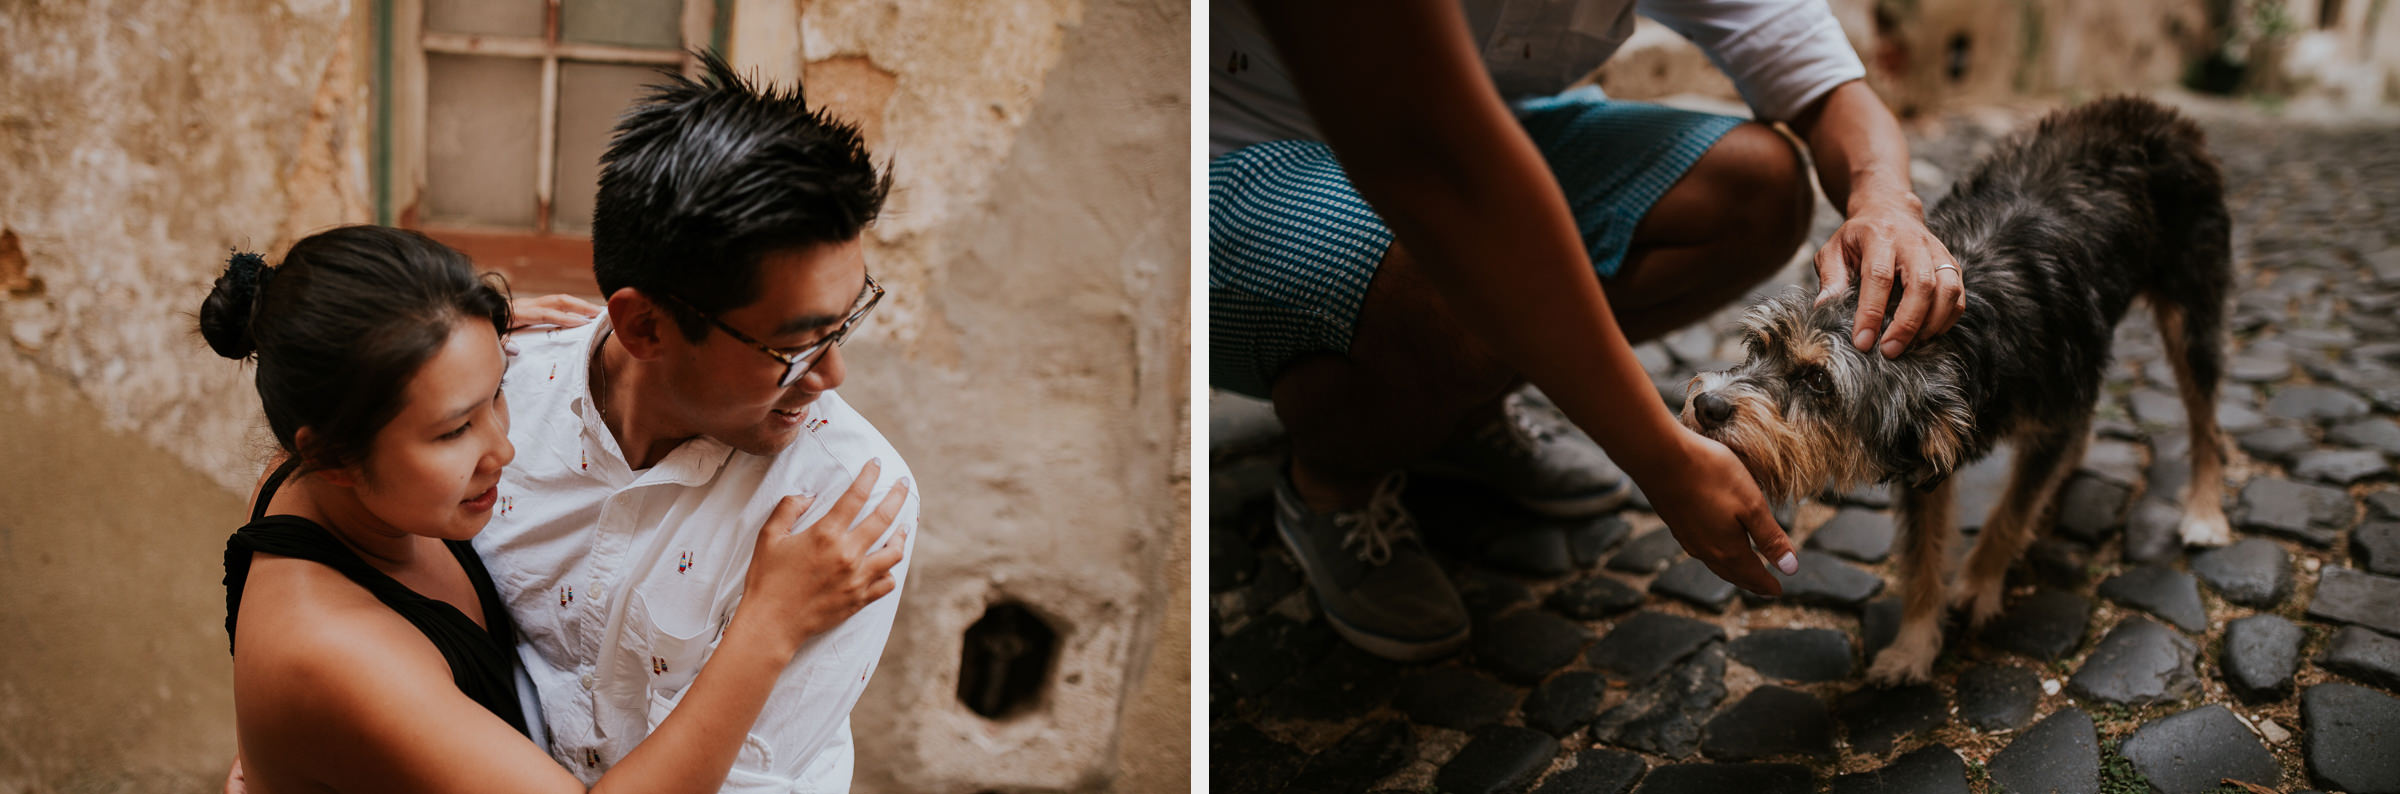 two photo montage of a asian couple in lisbon streets cuddling a dog